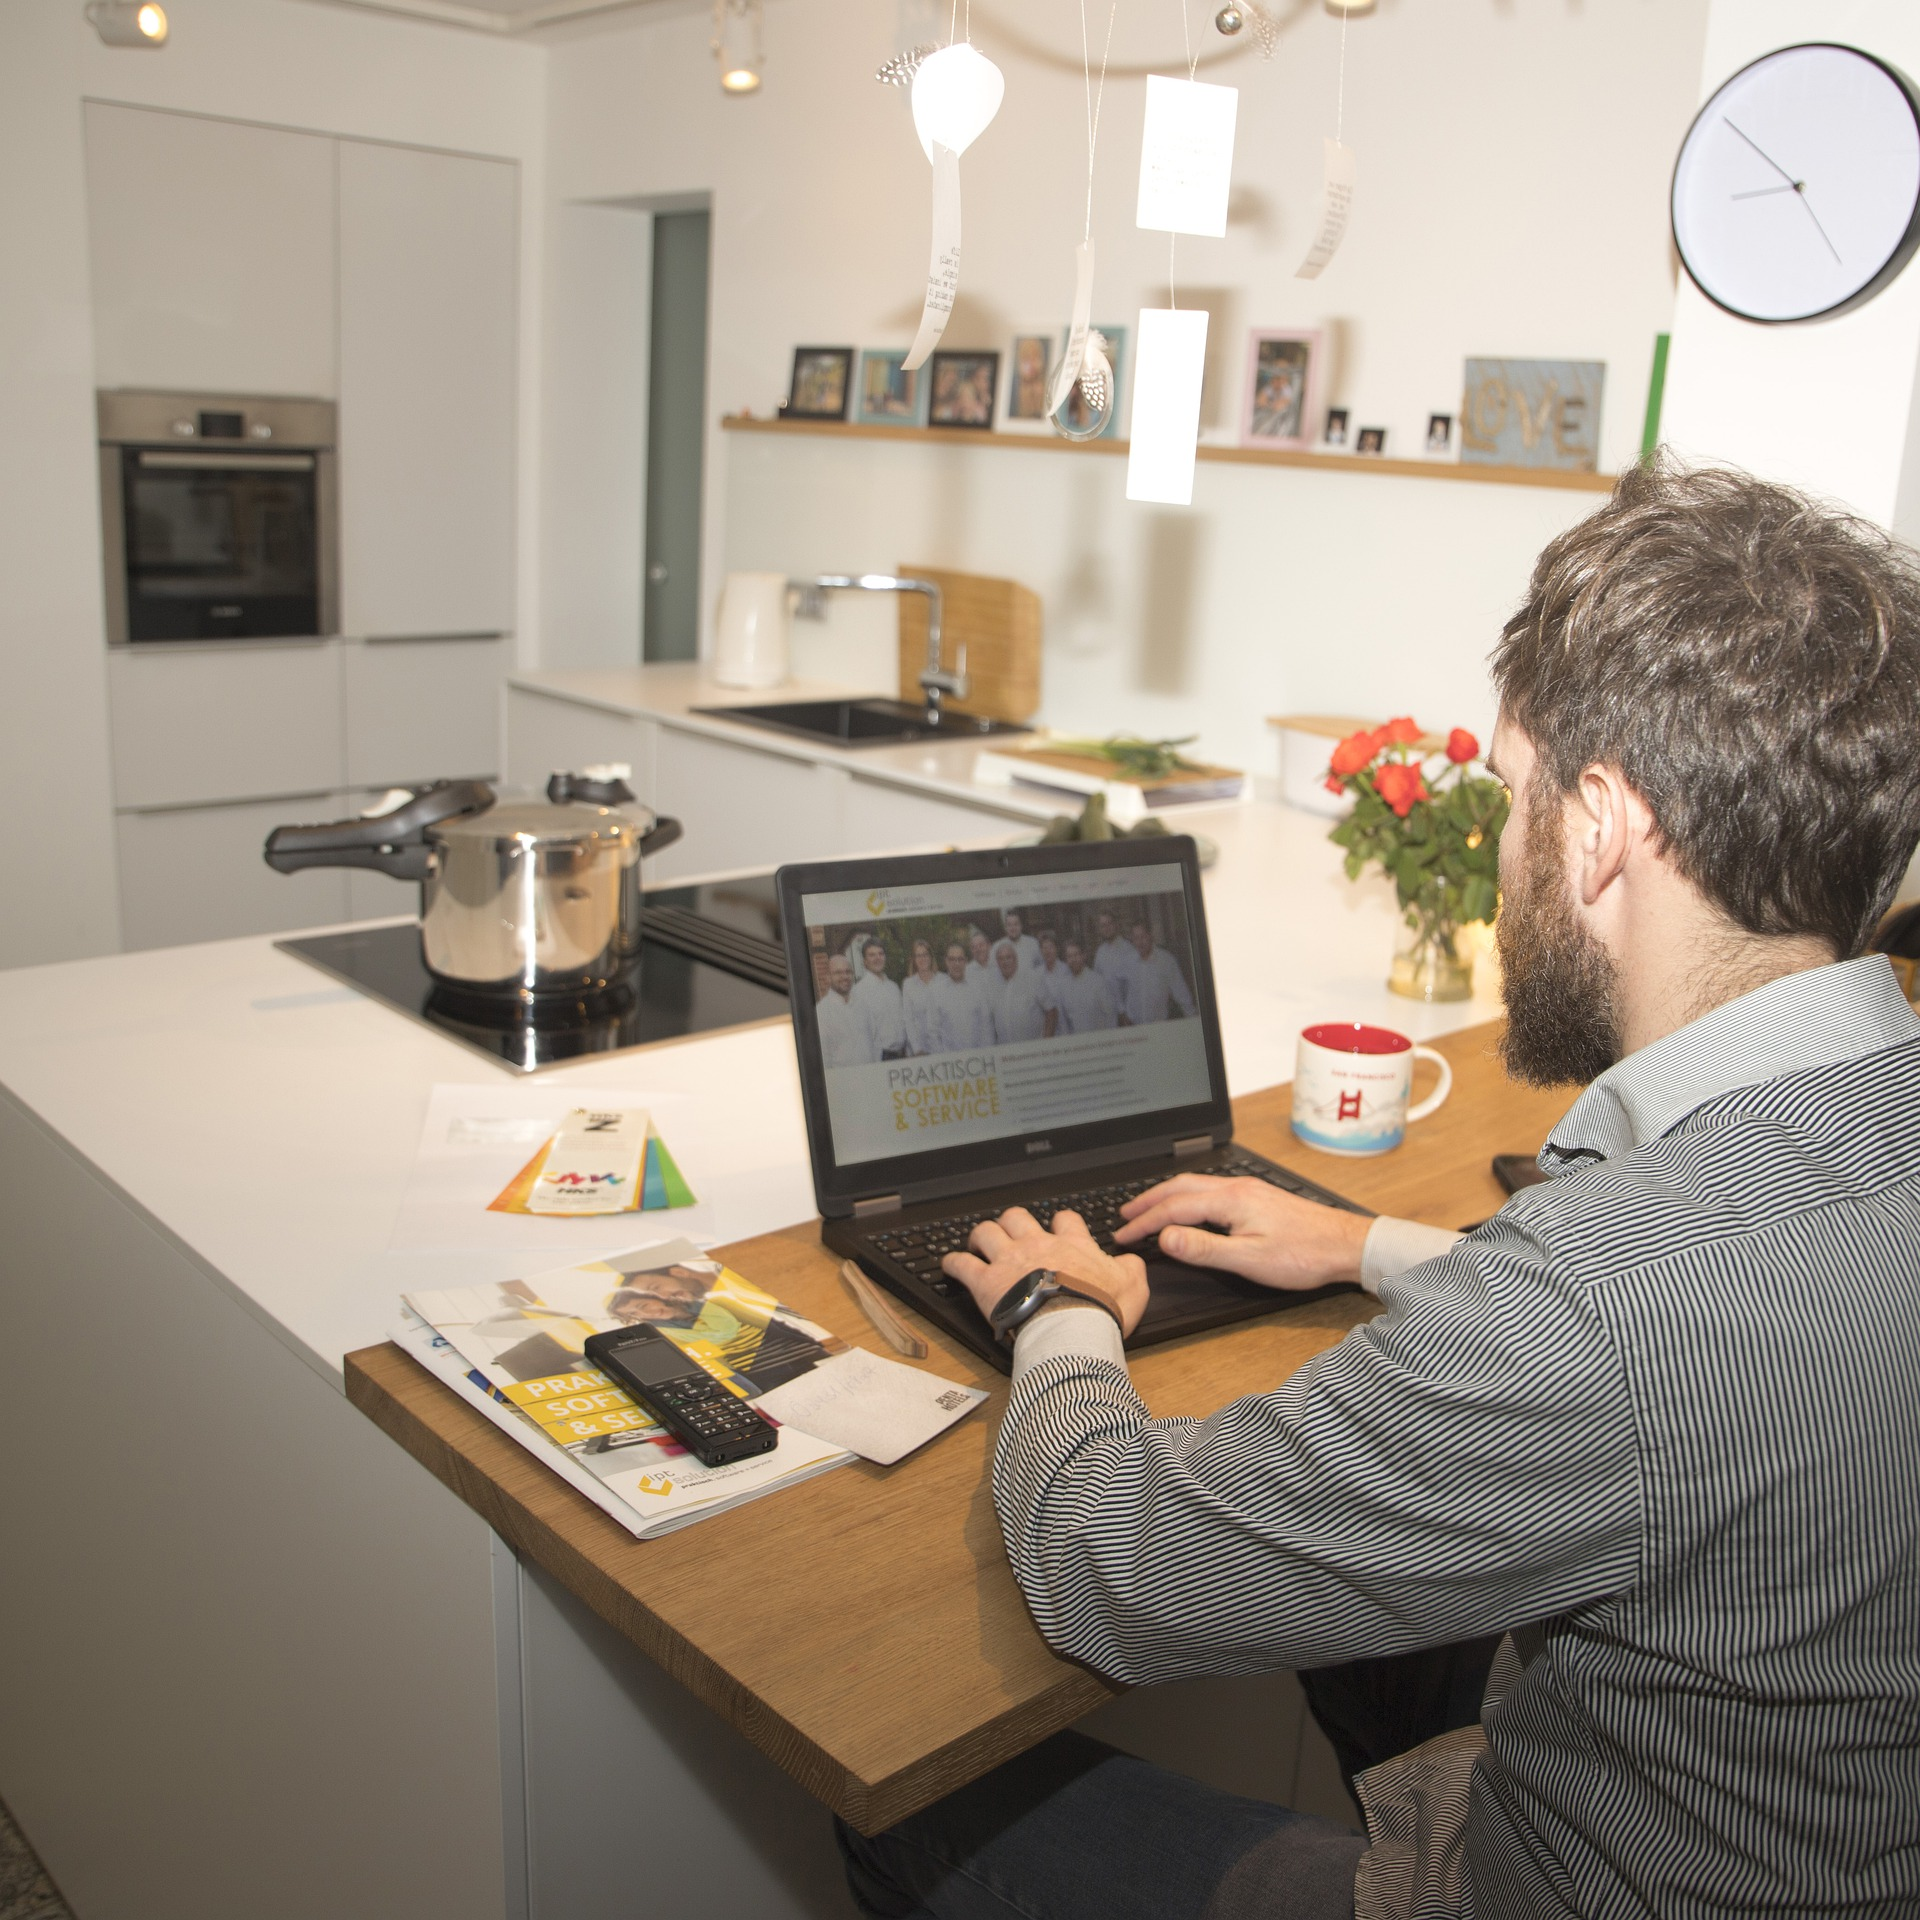 Flexible working is here to stay as organisations recognise effect on productivity